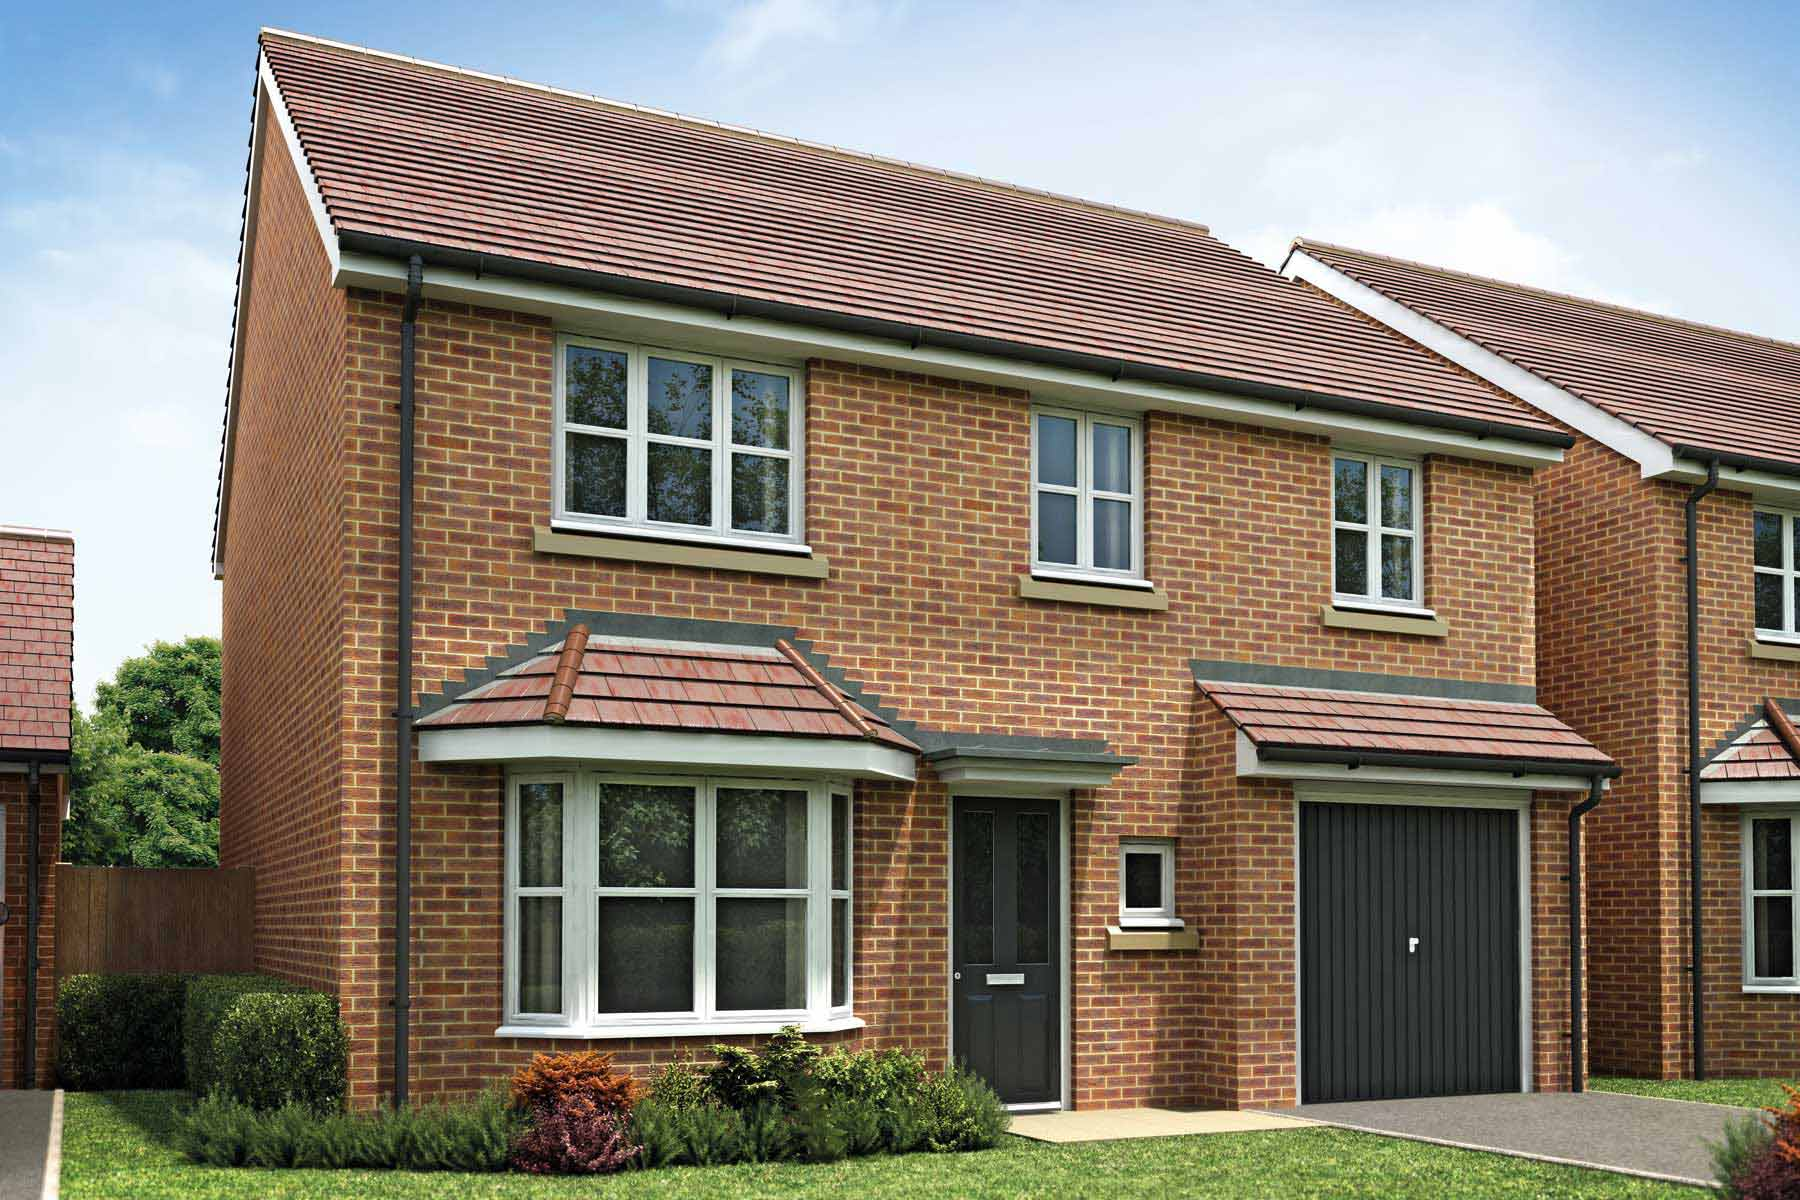 langley park new homes in maidstone taylor wimpey